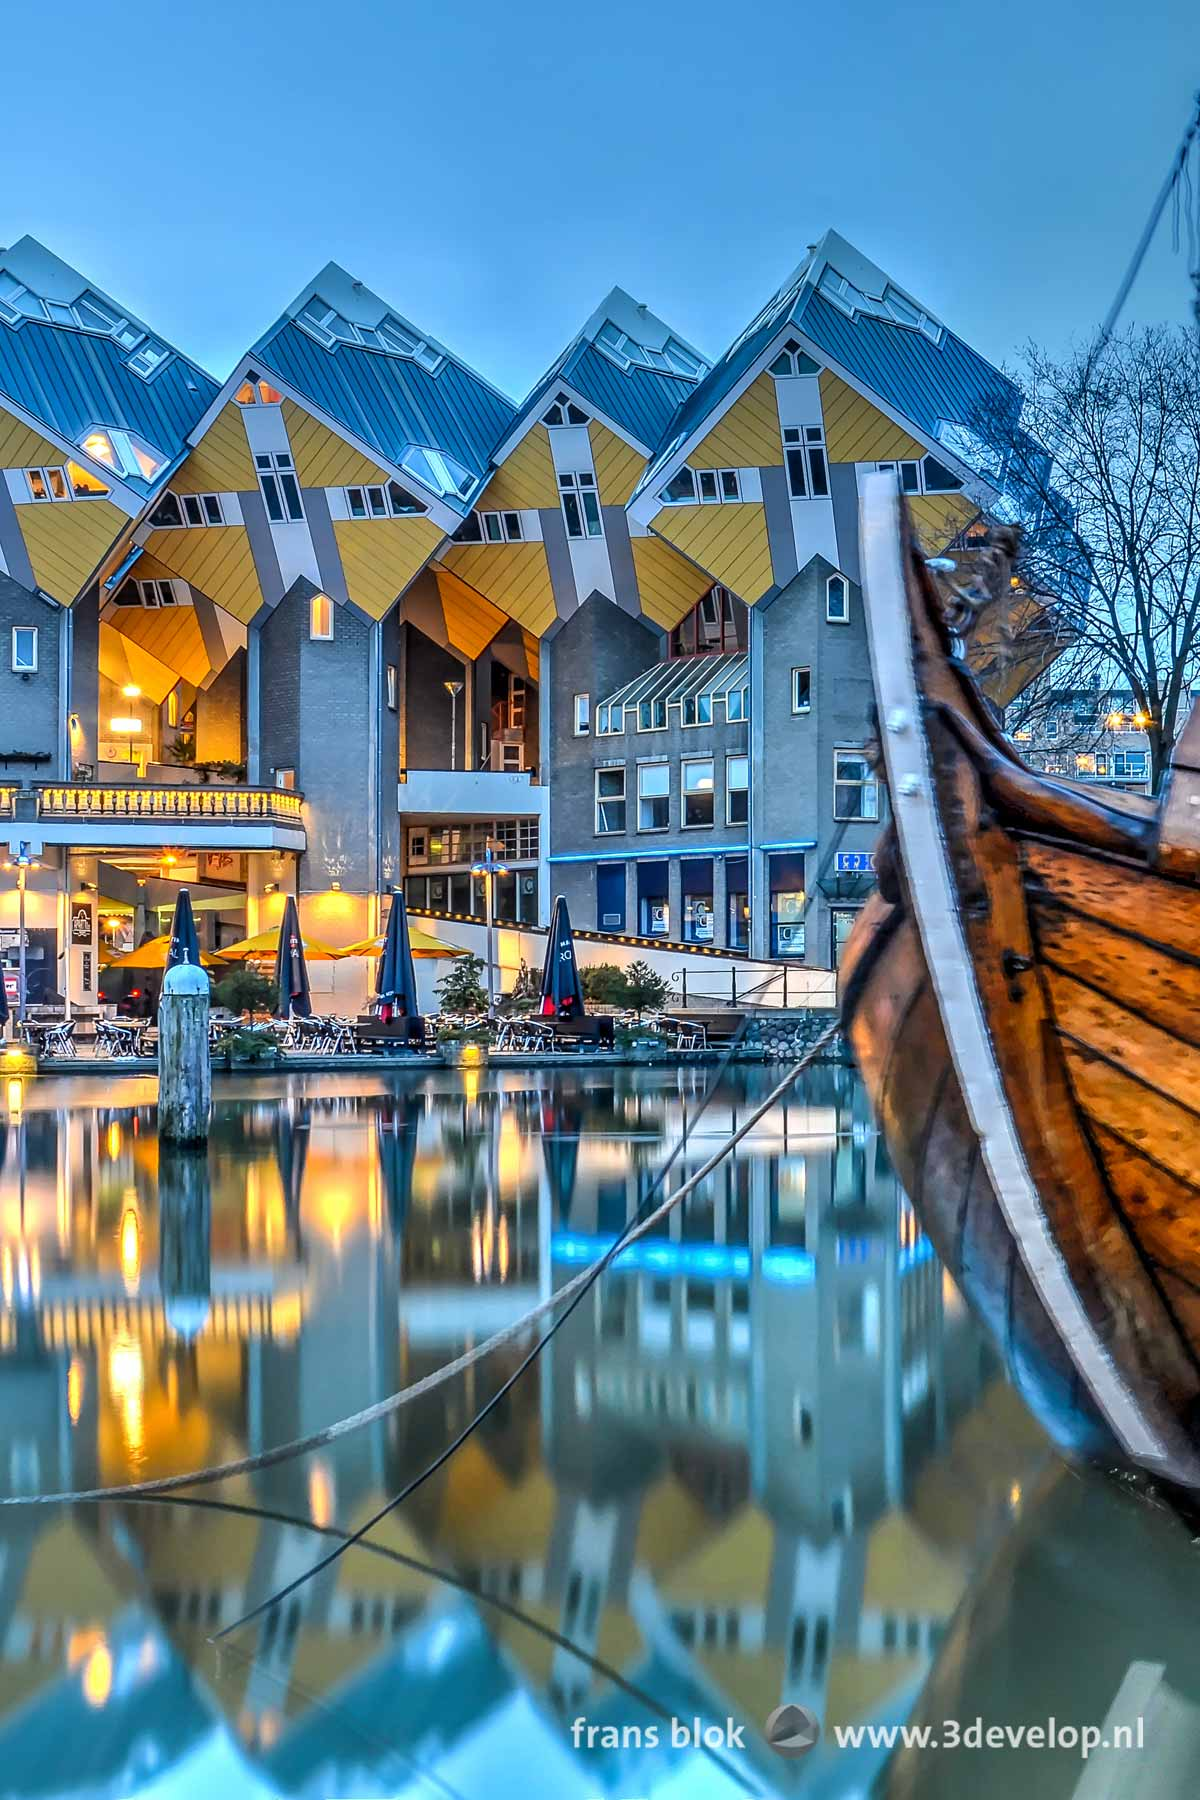 Popular on Pinterest: a photo made at dusk of the Cube houses reflecting in the Old Harbour in Rotterdam